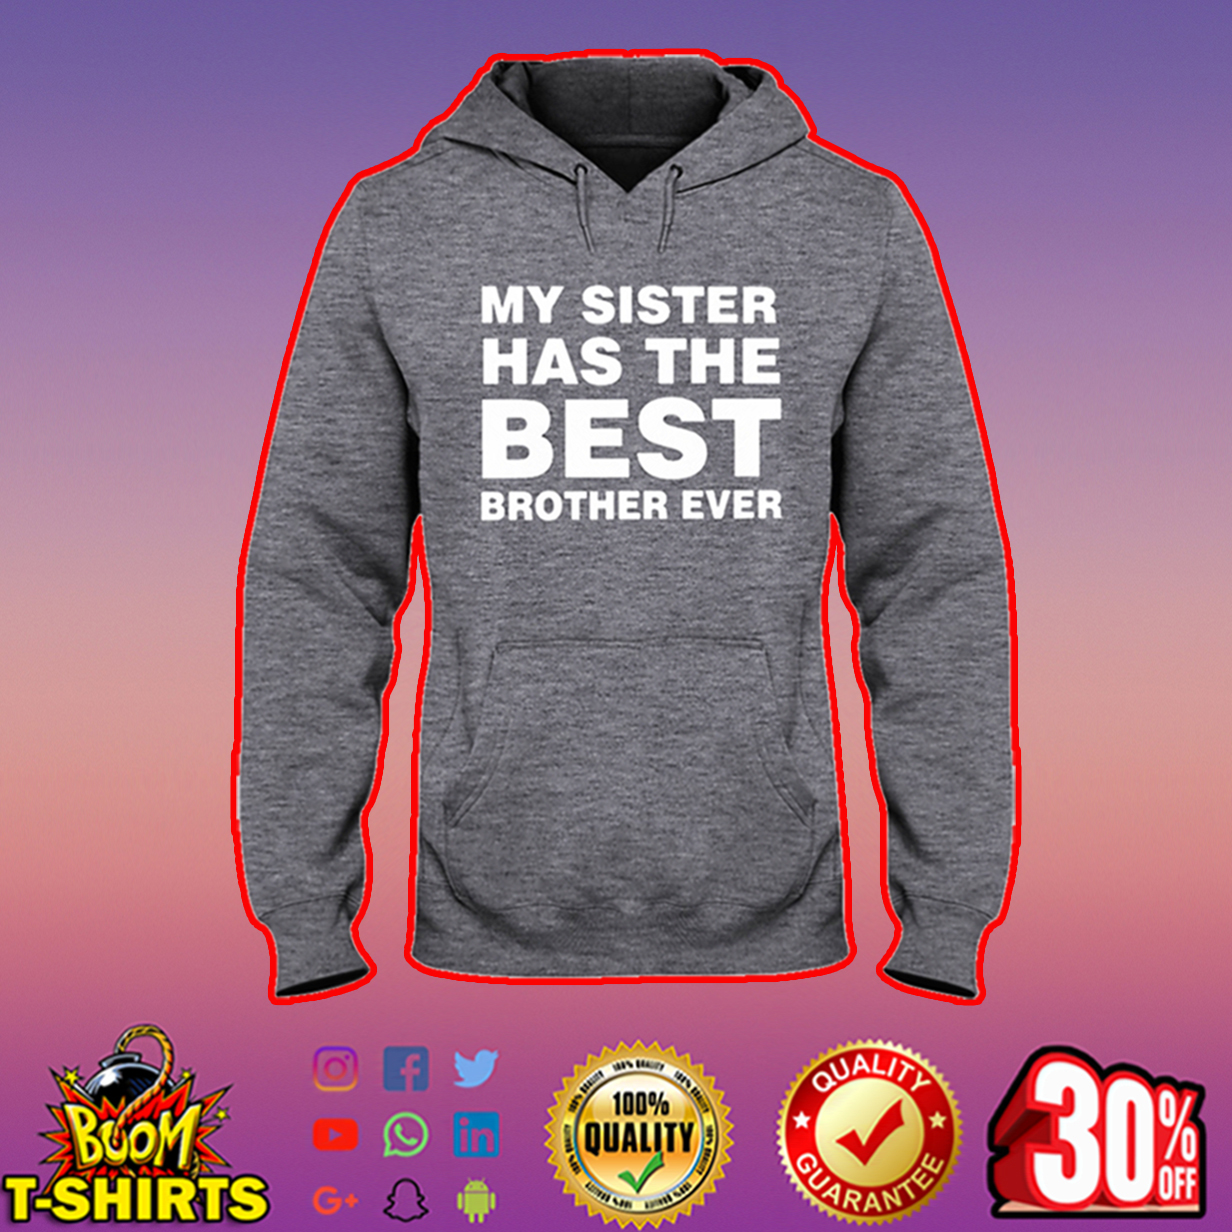 My sister has the best brother ever hooded sweatshirt